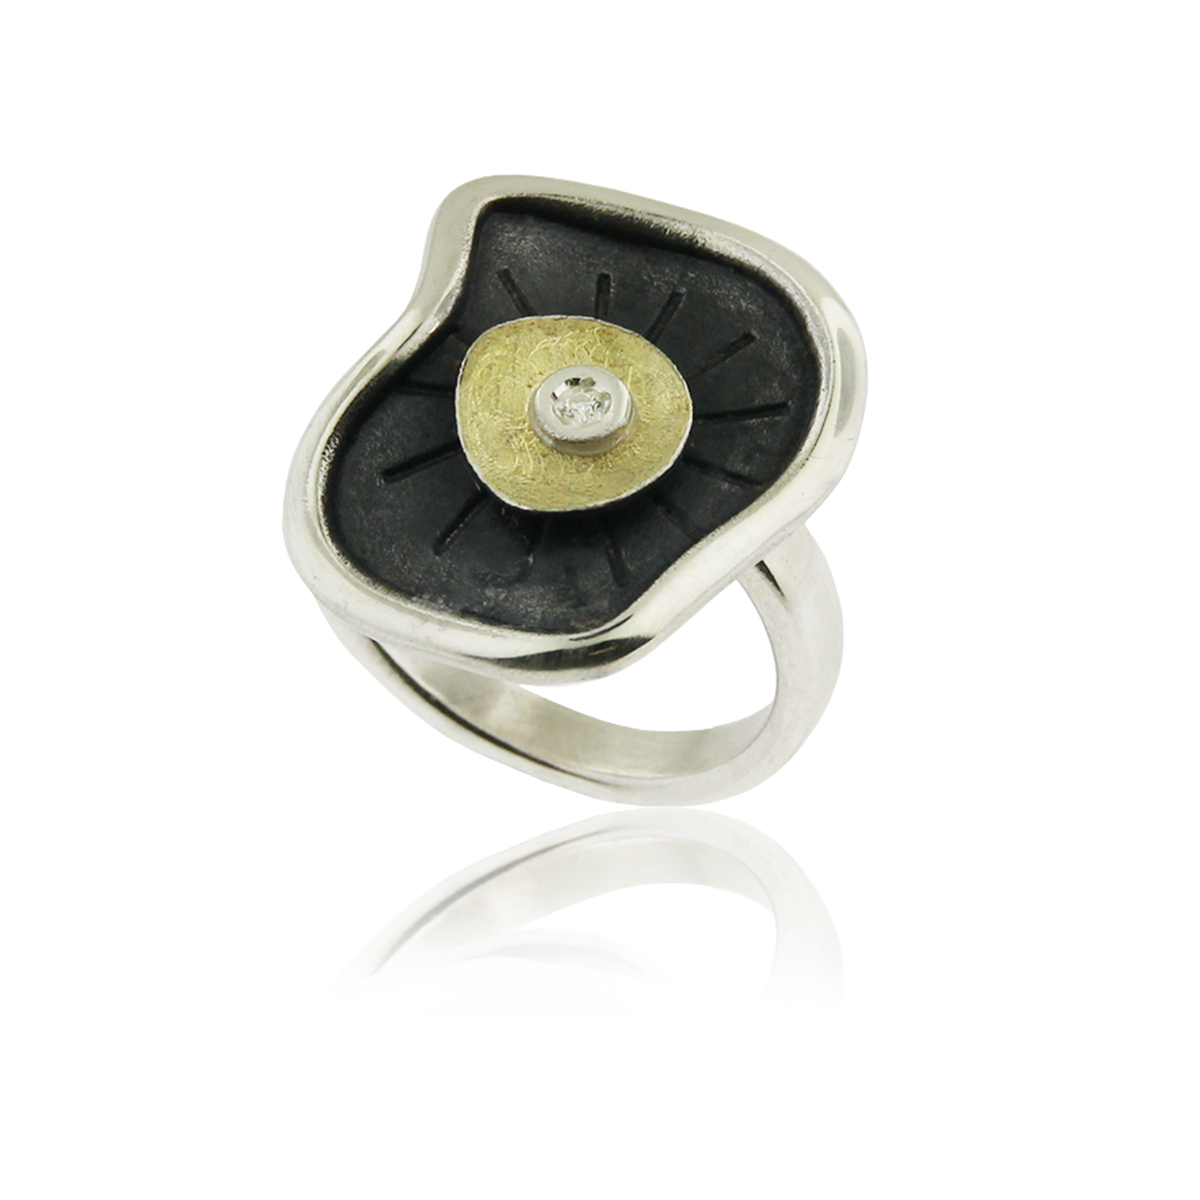 castle-rocks-and-jewelry-audar-lily-pad-silver-gold-ring-S-1955